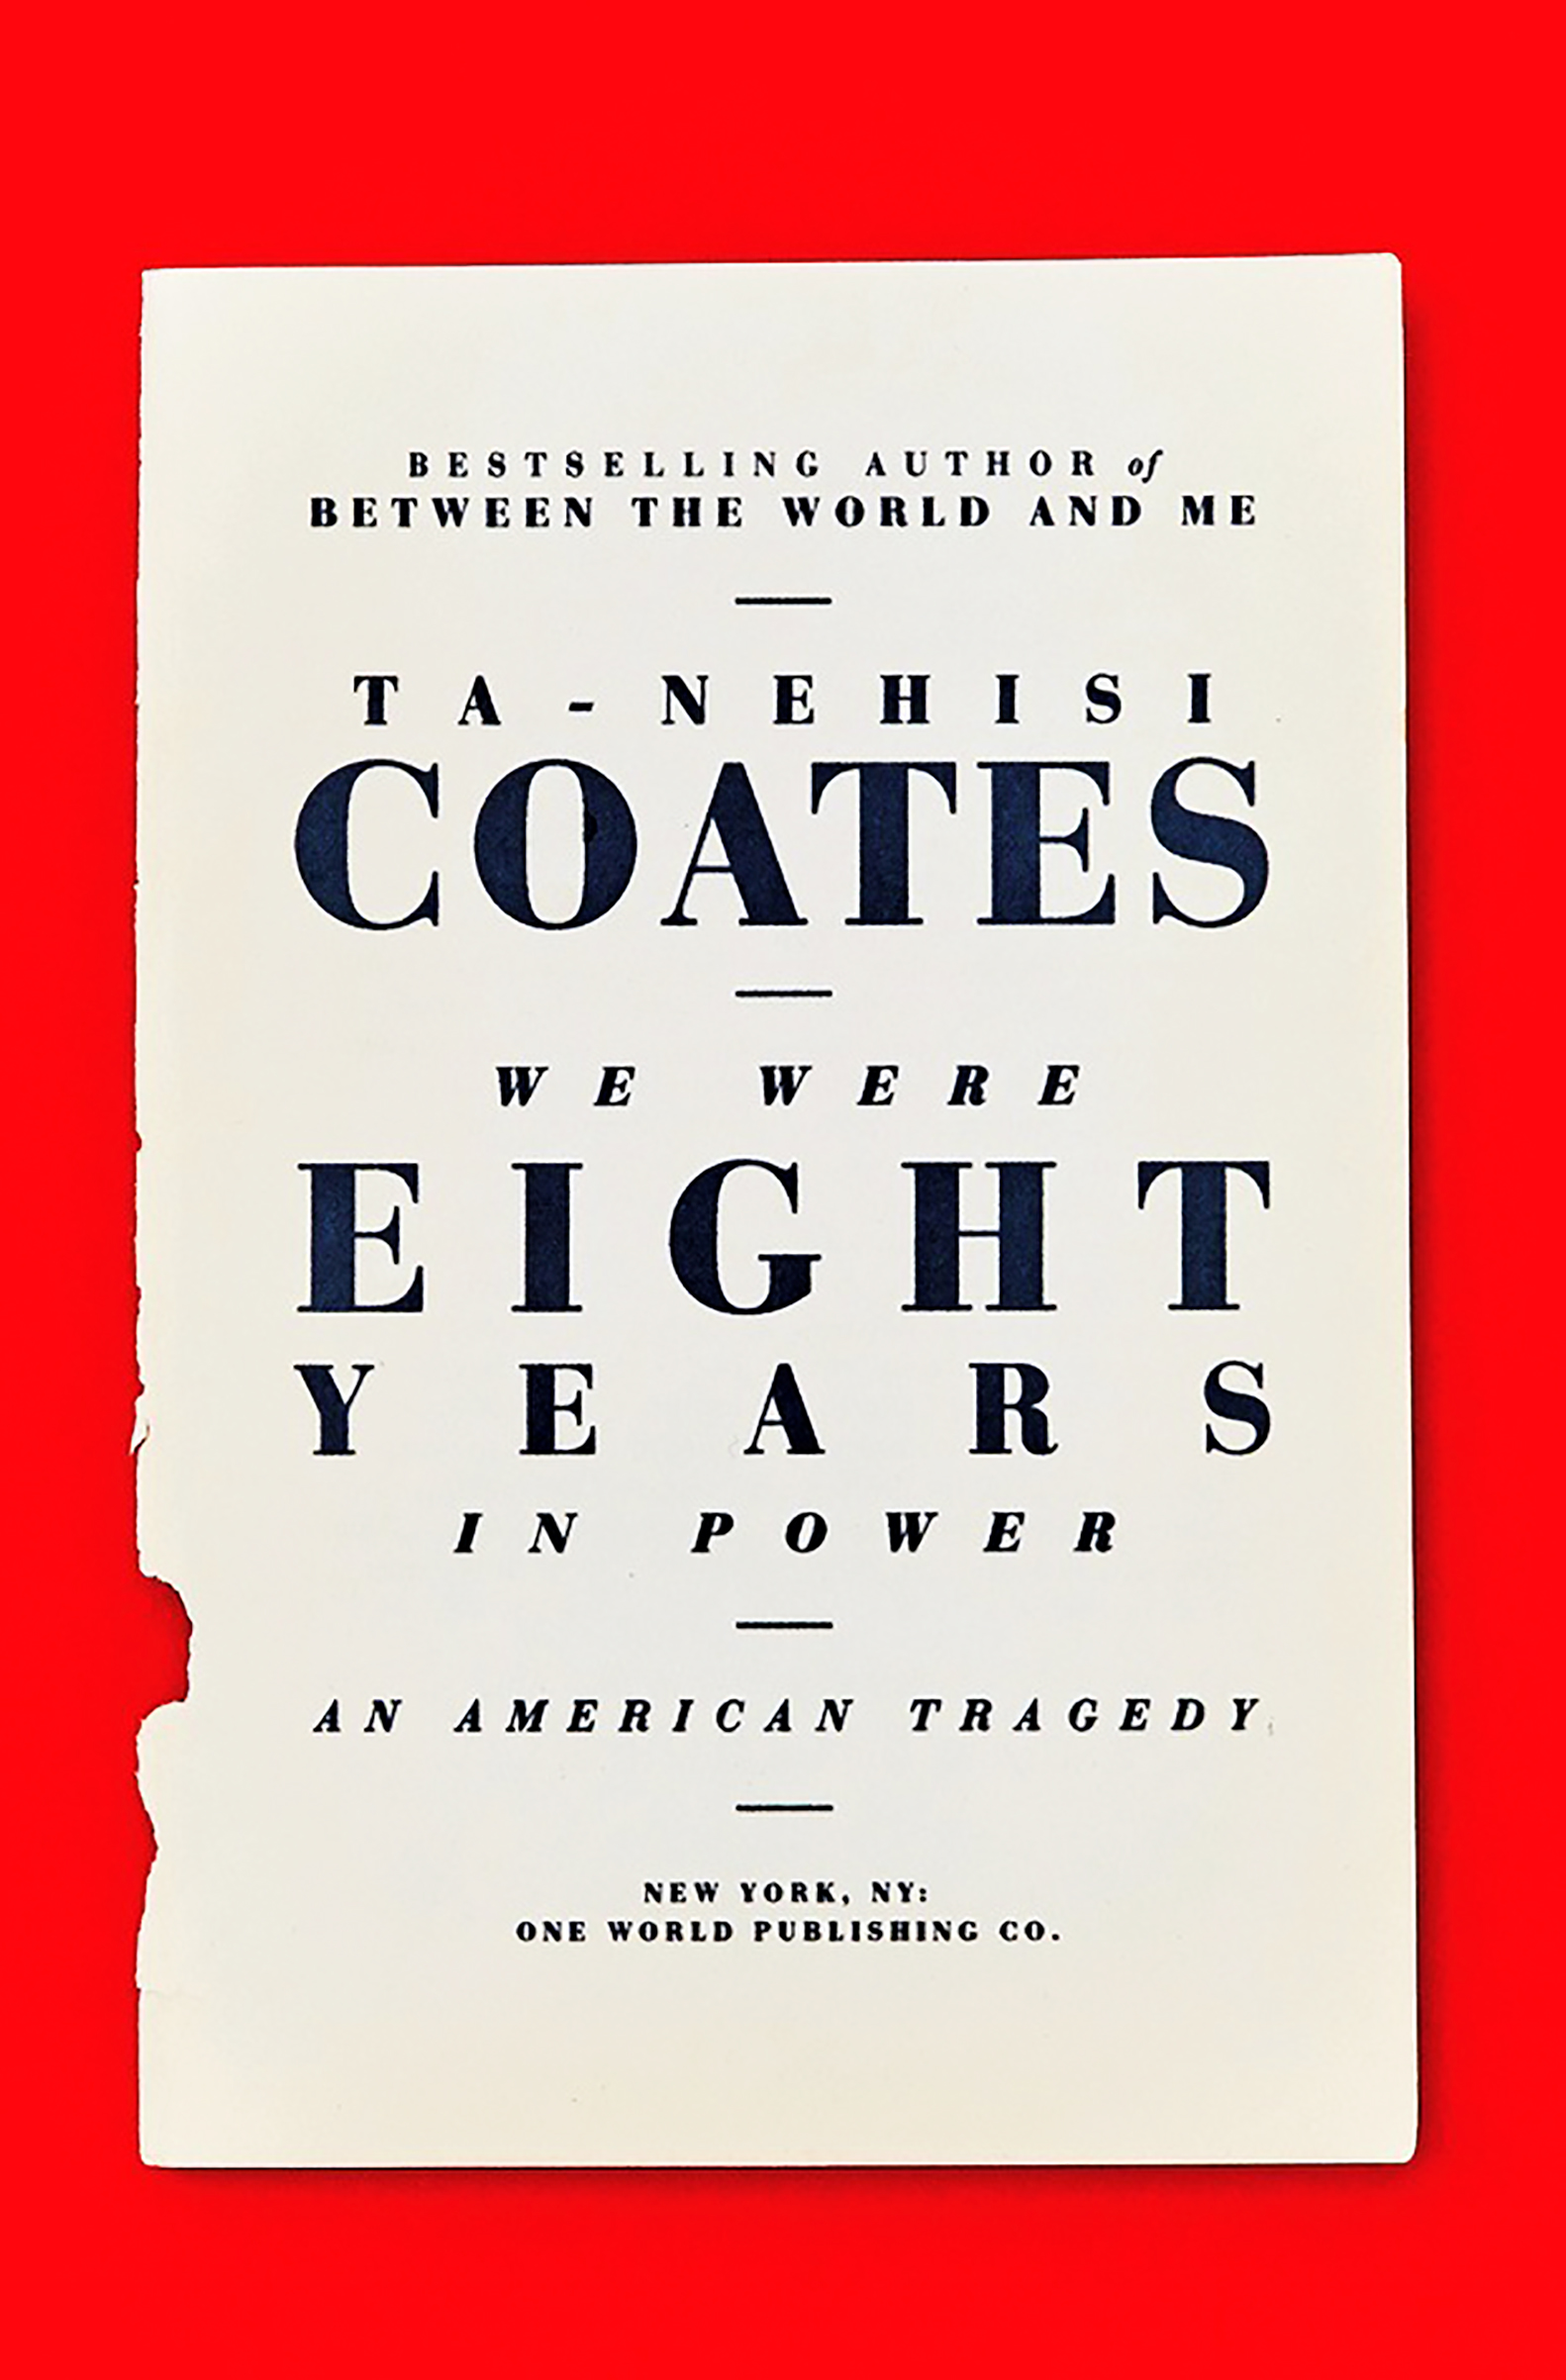 The book follows Coates' 2015 polemic, Between the World and Me, which won the National Book Award